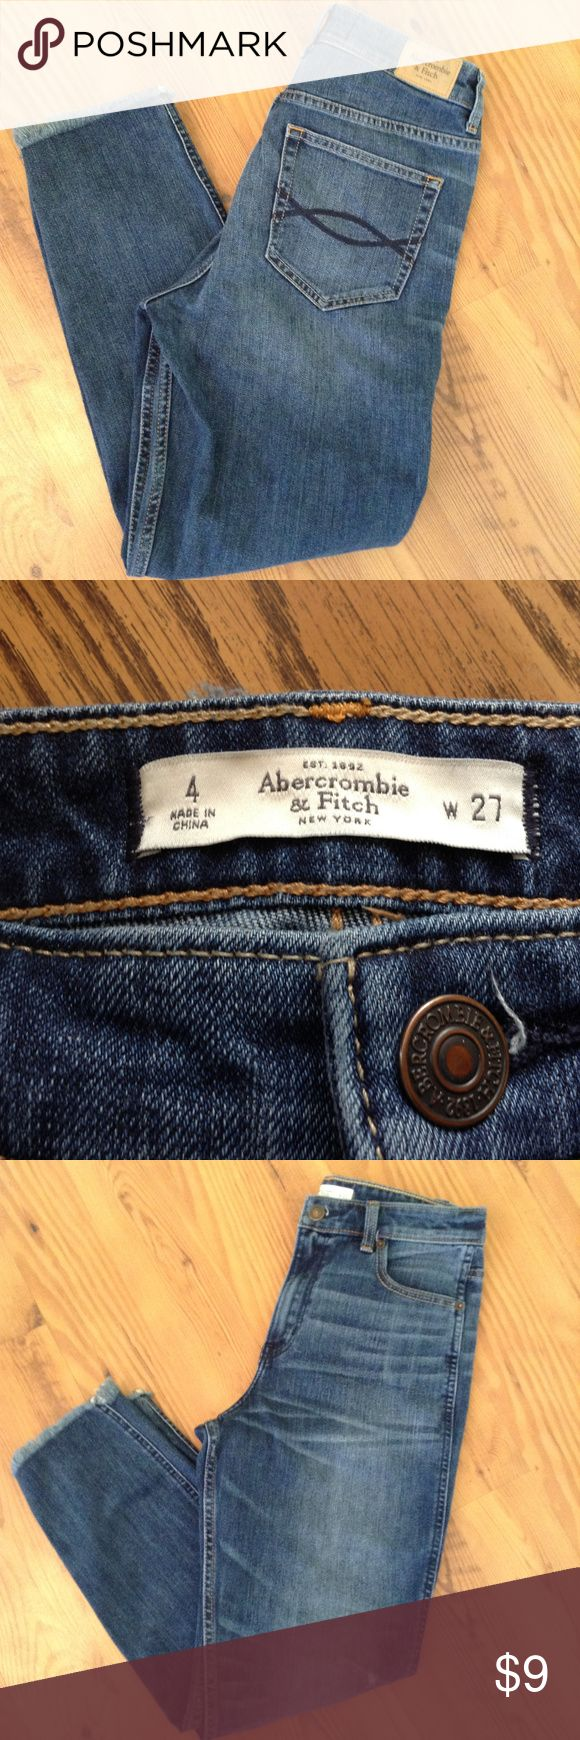 Abercrombie Jeans ⦁    Abercrombie Jeans ⦁    Pre-Owned Condition/Bottom Of legs have been cut ⦁    Womens Size 4 ⦁    Inseam 26 Abercrombie & Fitch Jeans